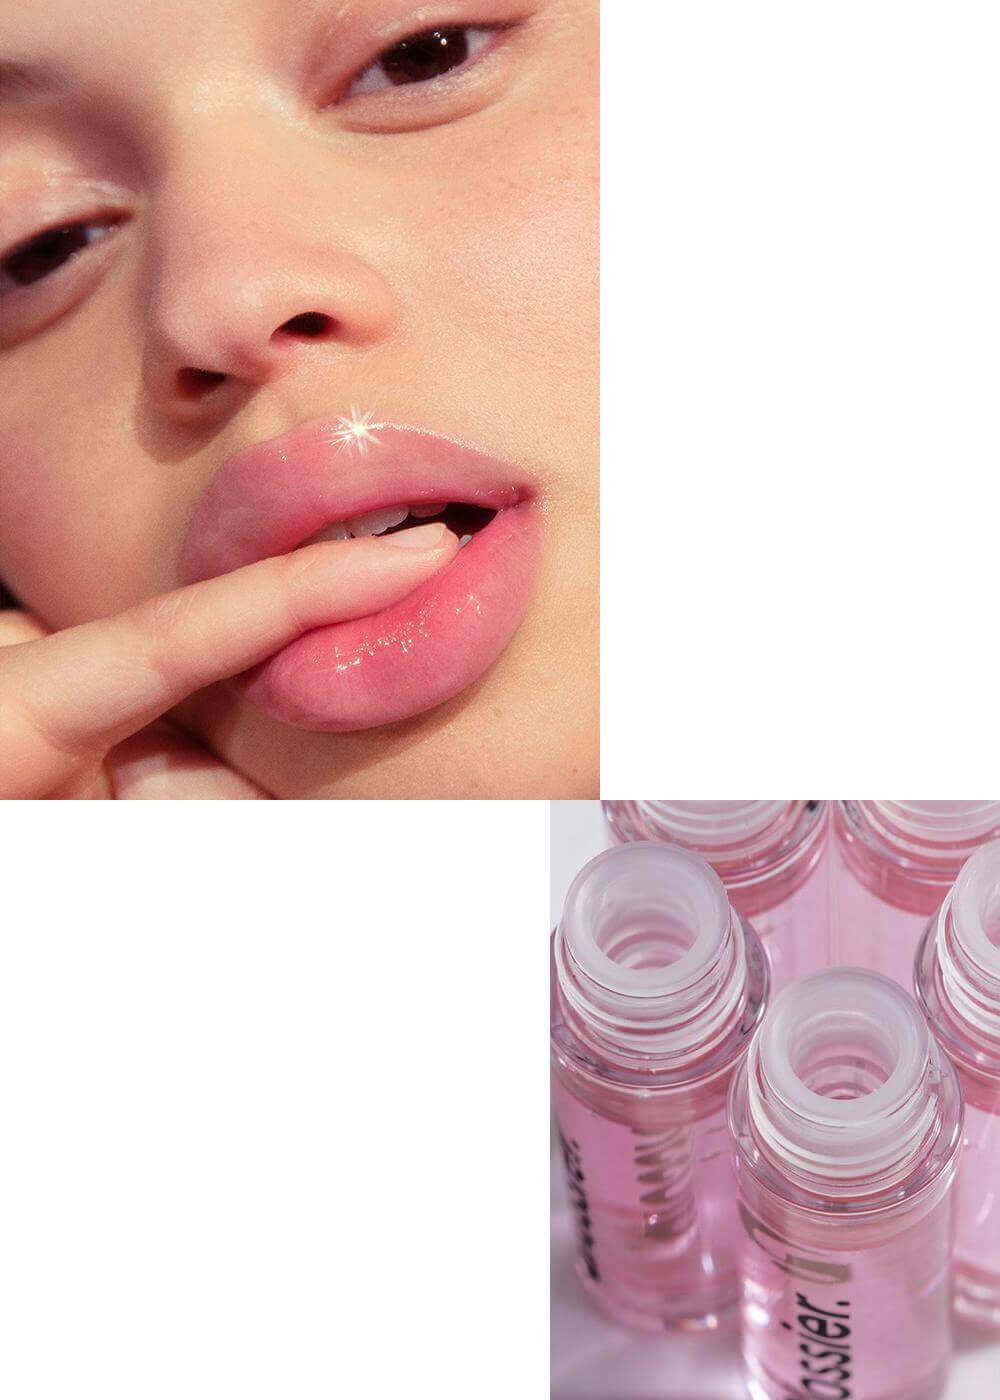 lip gloss: hypoallergenic, dermatologist tested, paraben free, alcohol free, cruelty free